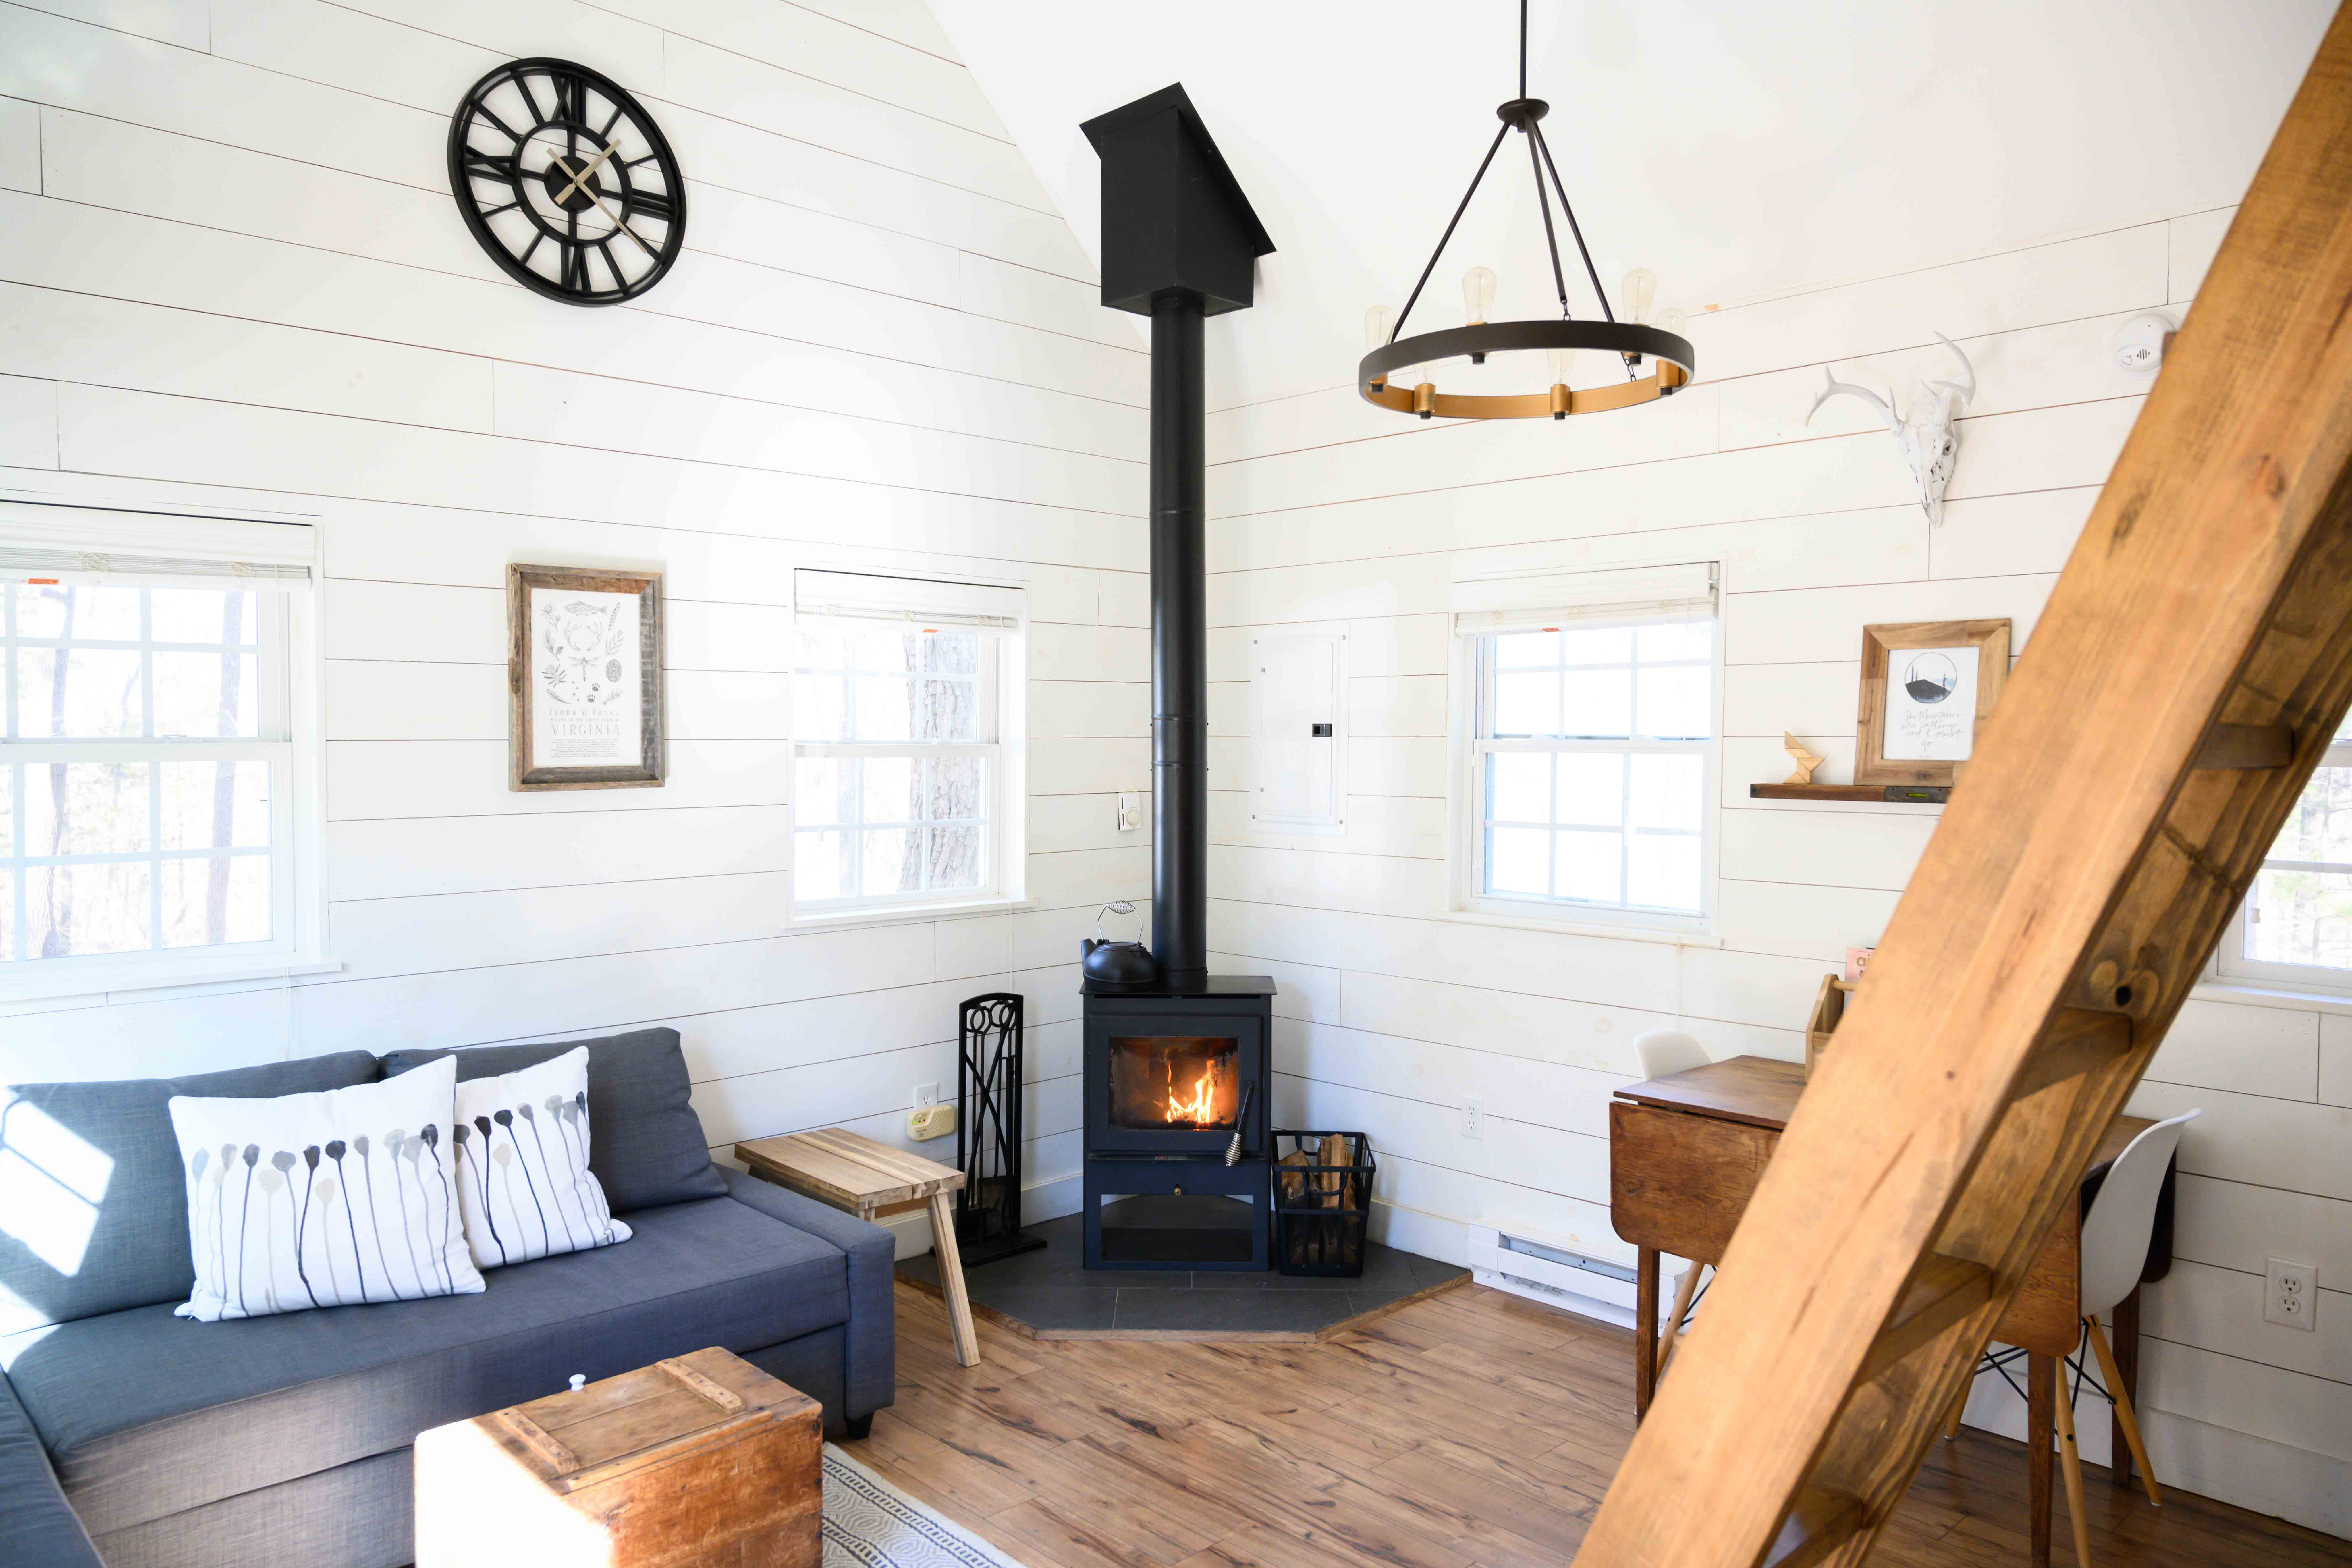 13 Best Airbnb Cabins You Can Rent To Get Off The Grid